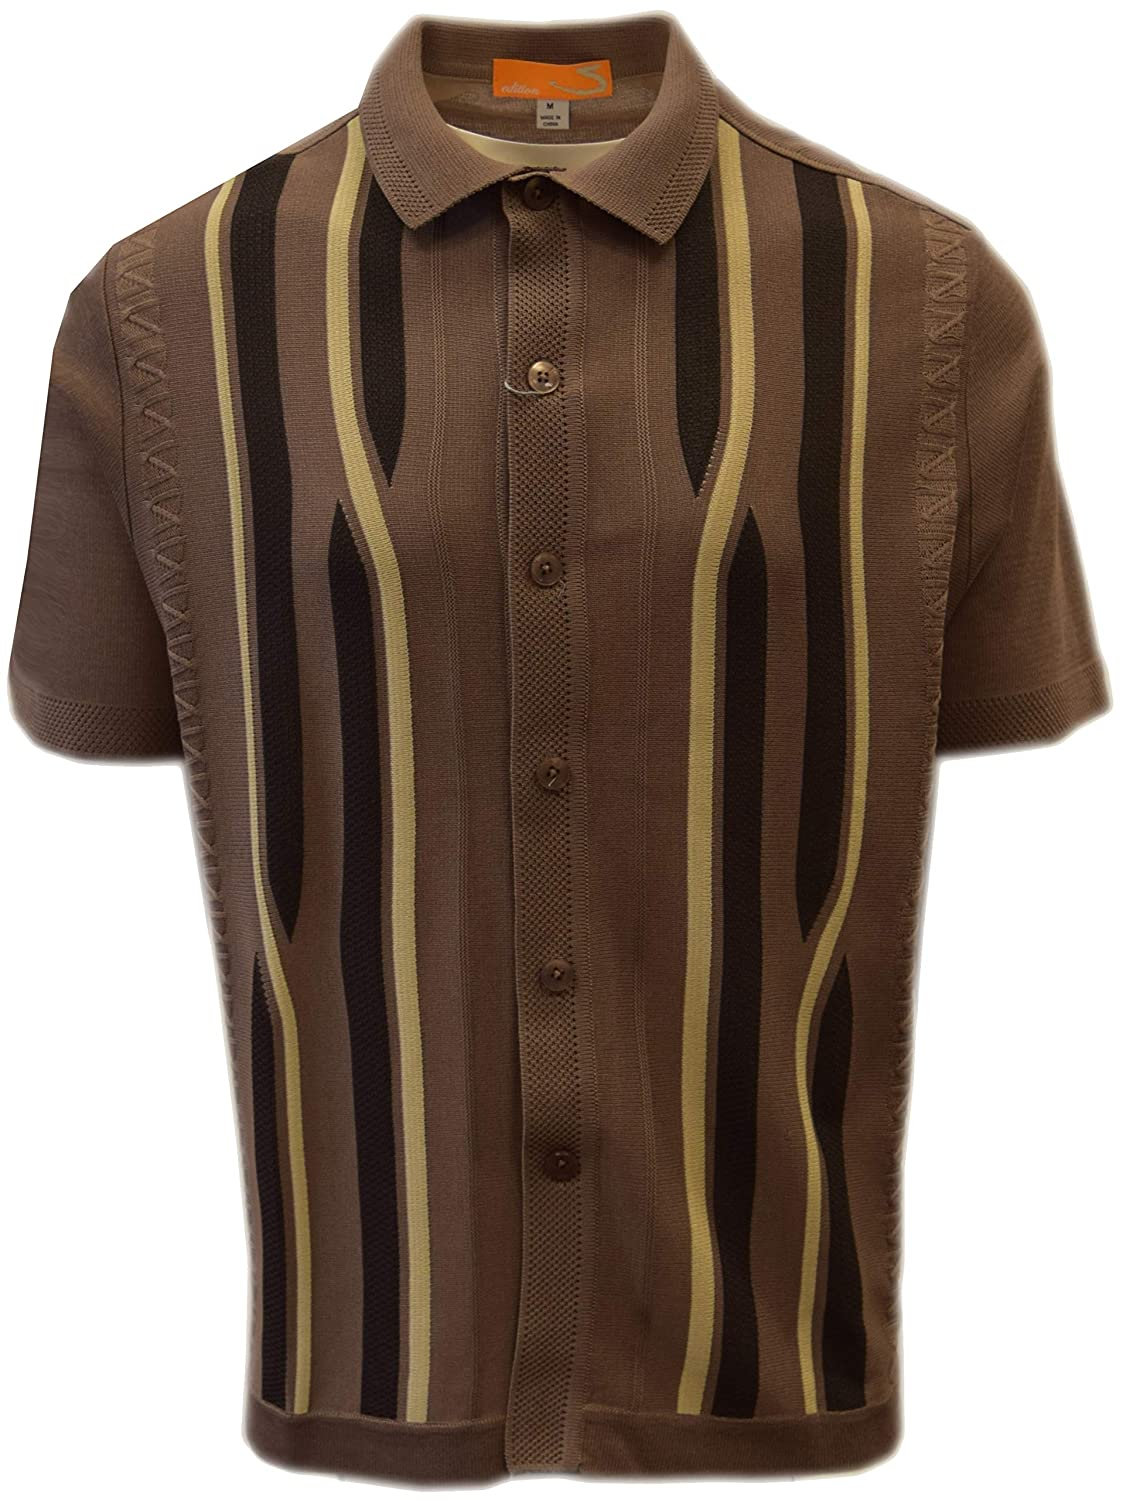 Mens Vintage Shirts – Casual, Dress, T-shirts, Polos SAFIRE SILK INC. Edition S Mens Short Sleeve Knit Shirt - California Rockabilly Style: Swirly Jacquard $49.00 AT vintagedancer.com